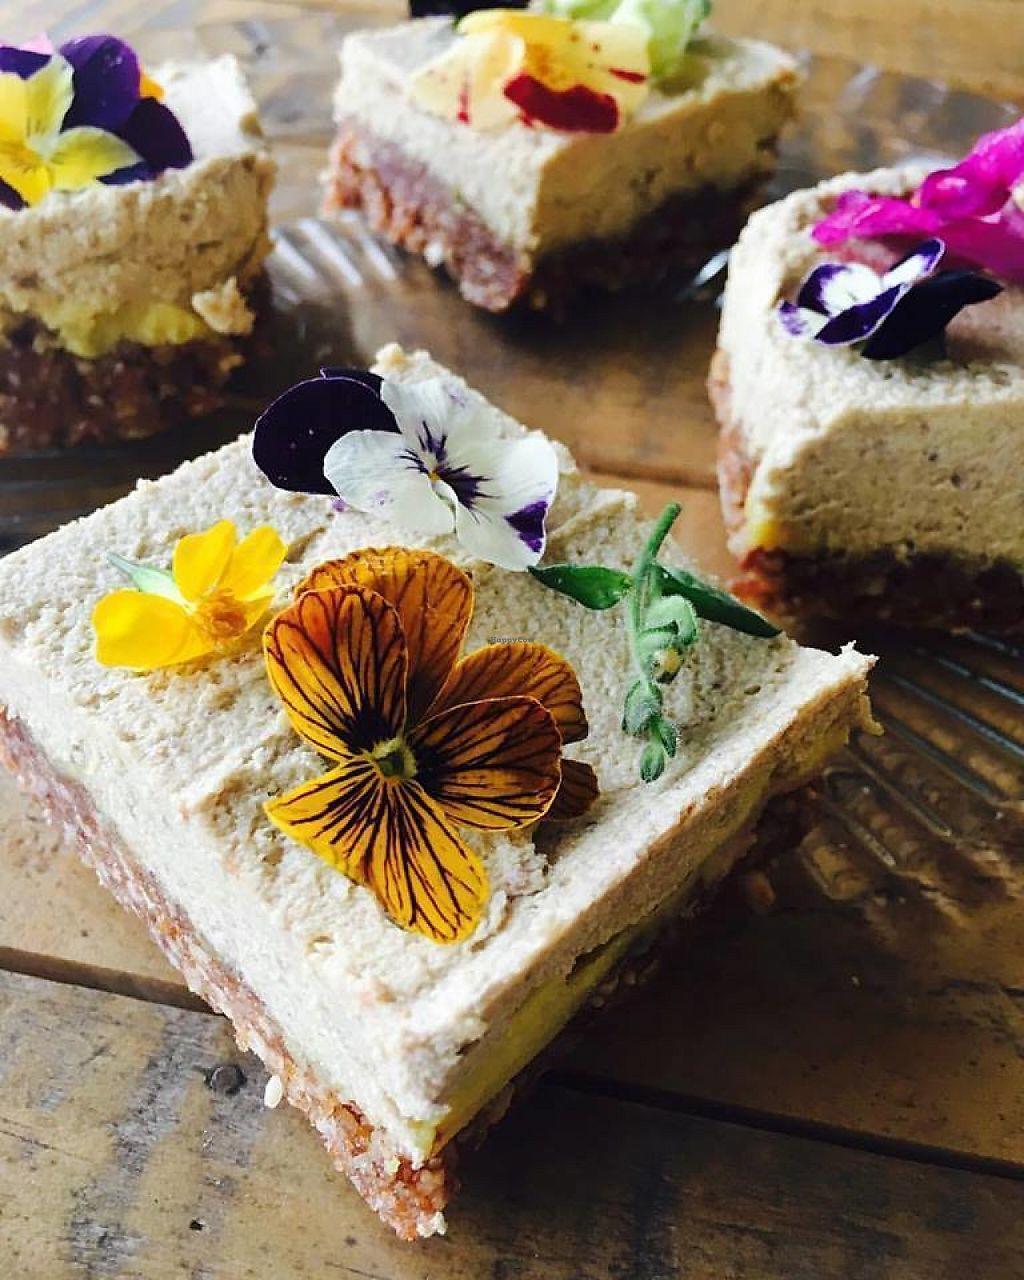 "Photo of The Organic Bee Cafe  by <a href=""/members/profile/community5"">community5</a> <br/>Raw vegan cheesecake <br/> May 12, 2017  - <a href='/contact/abuse/image/91300/258294'>Report</a>"